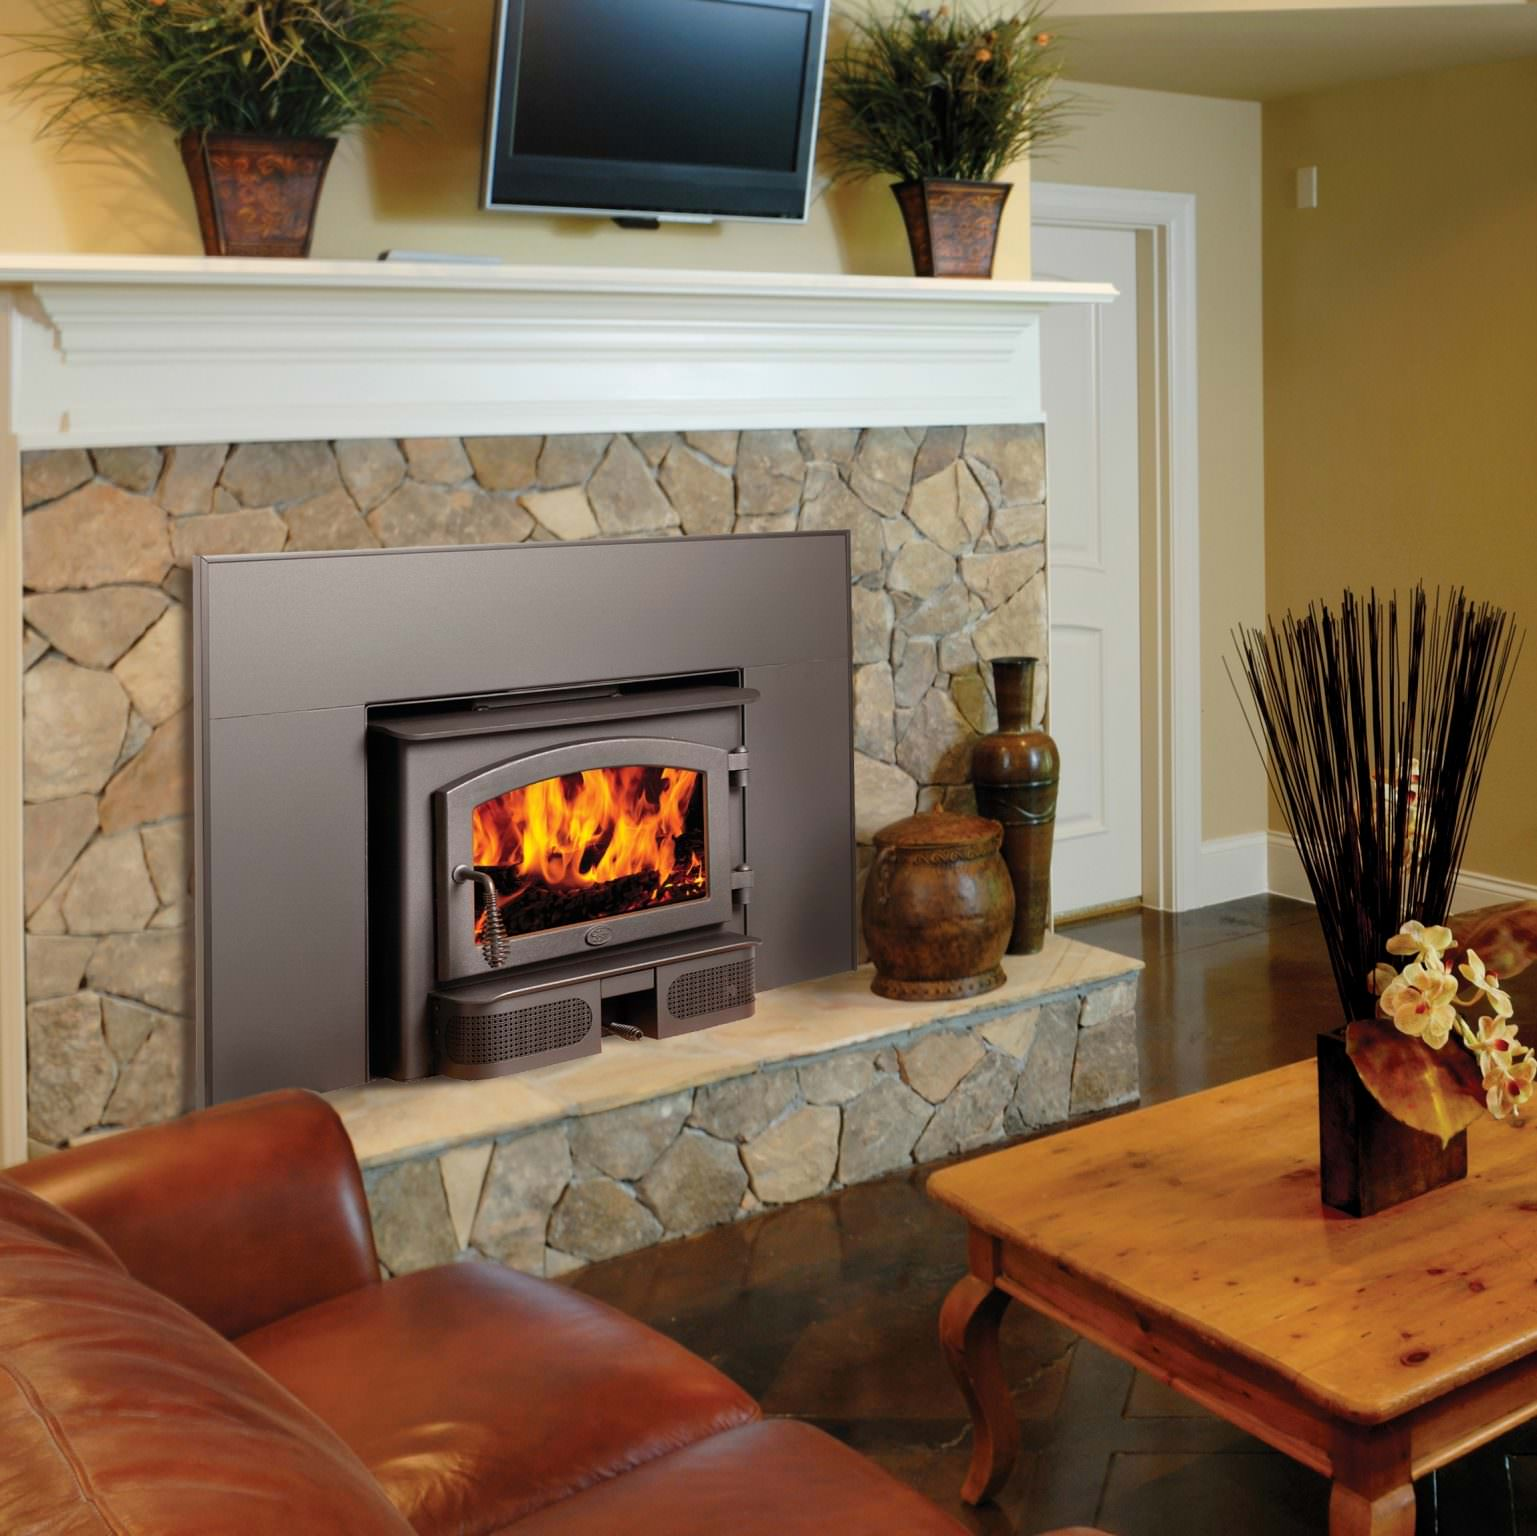 Avalon Gas Fireplace Inserts Lopi Republic 1250i Wood Insert Fireplace Gallery Of Western